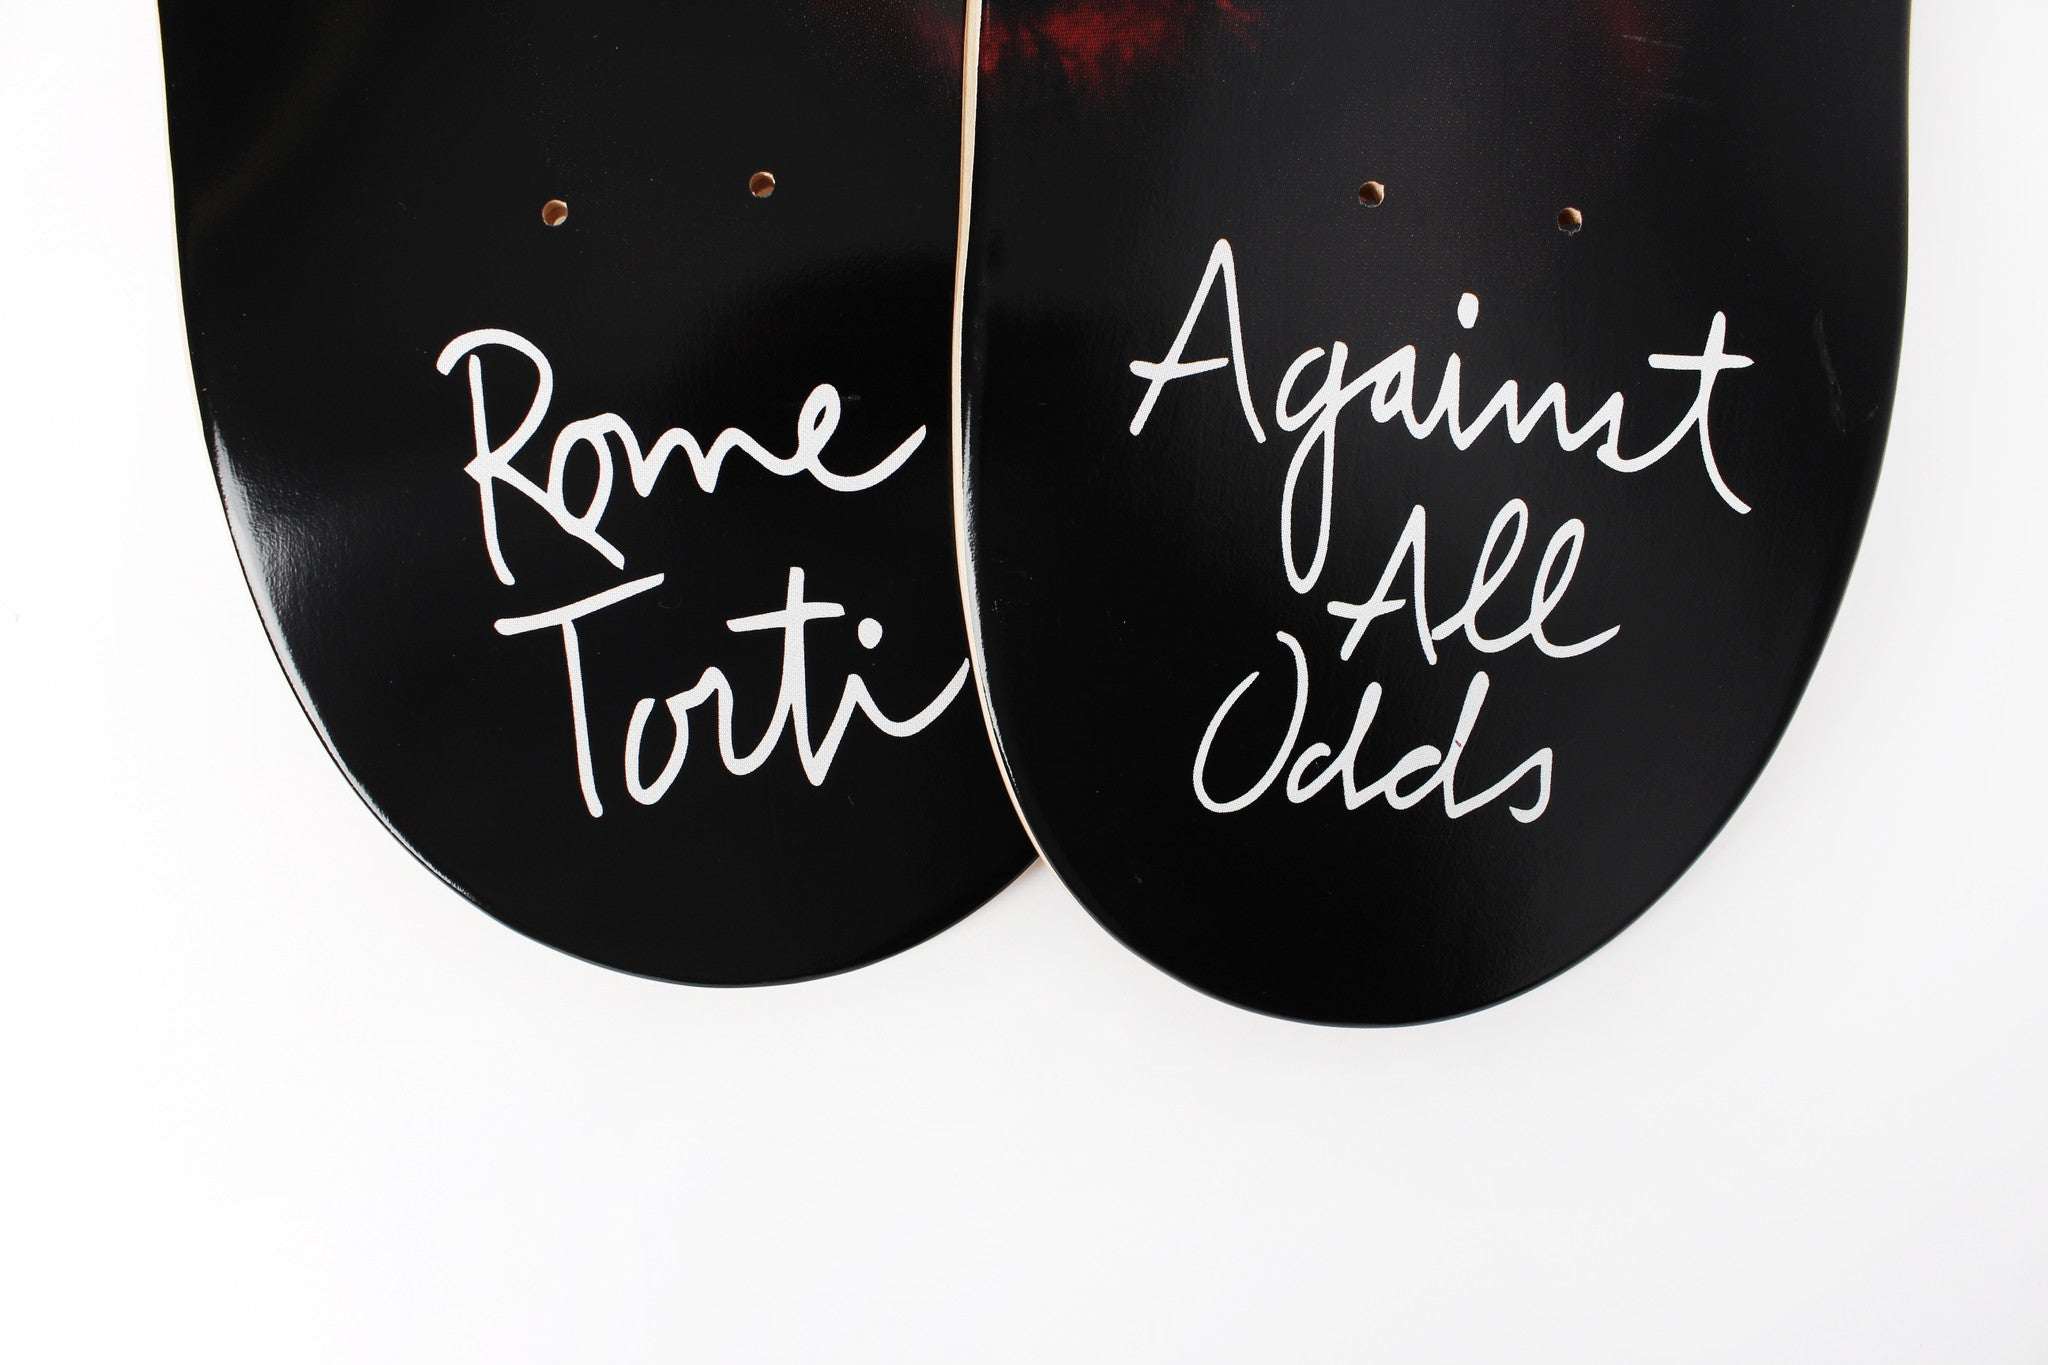 Rome Torti Against All Odds - Skateboard (right side)